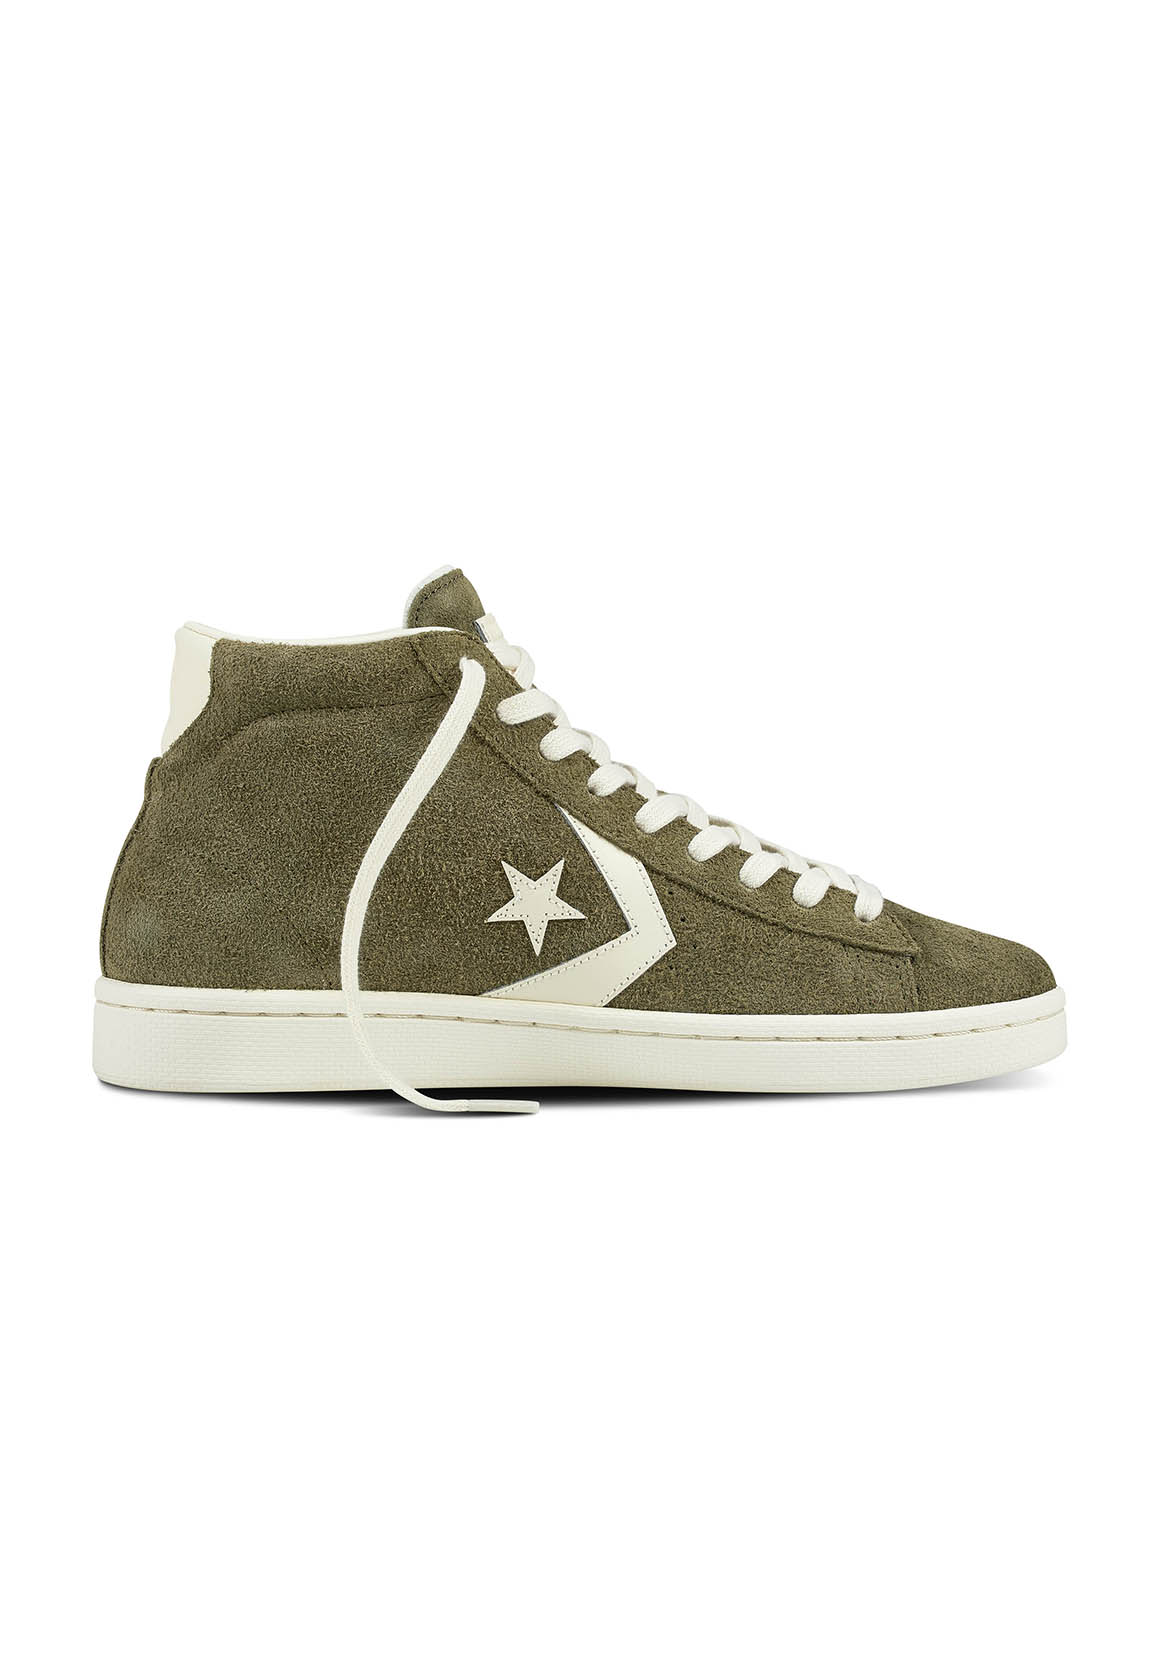 new product dc20b 5dba5 Converse Chucks High PRO LEATHER MID 157690C Grün Medium Olive